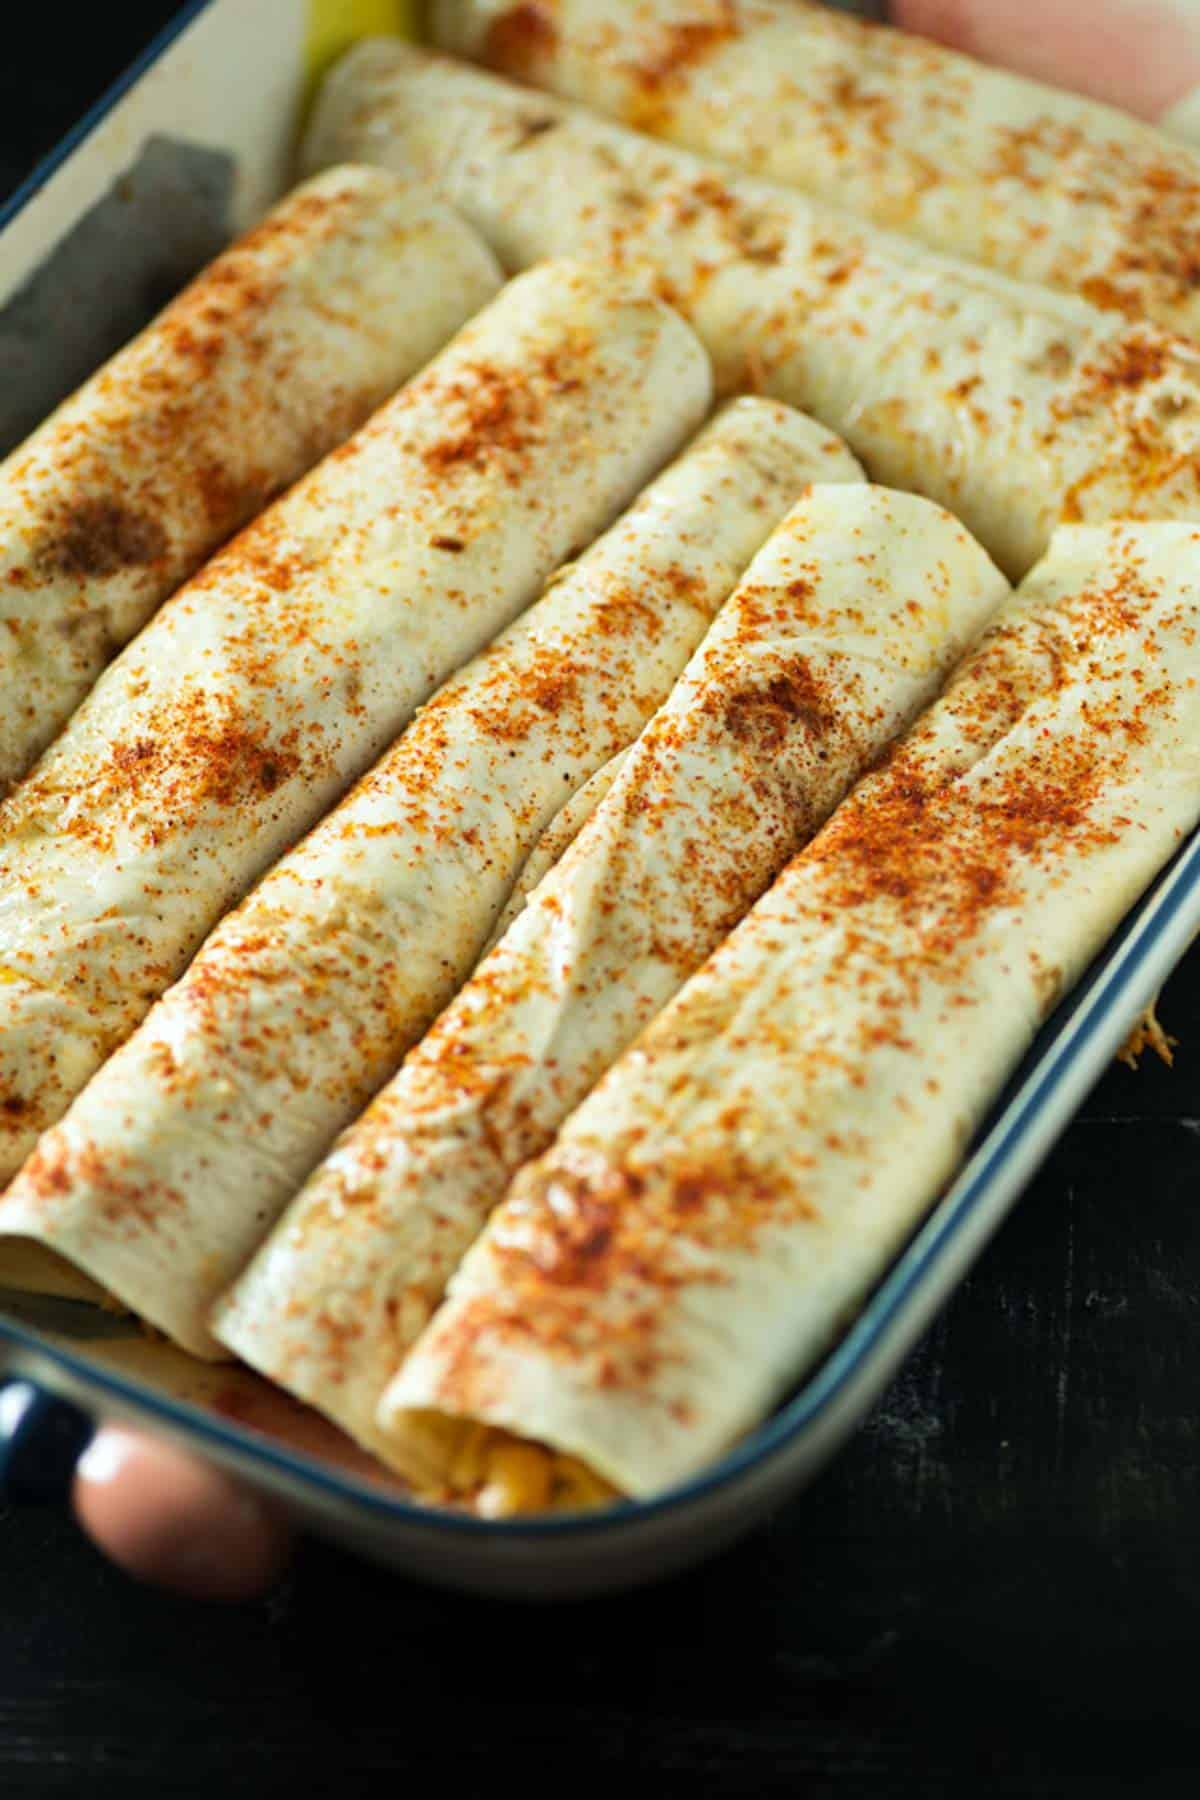 Tortillas filled with chicken and cheese in a baking dish.